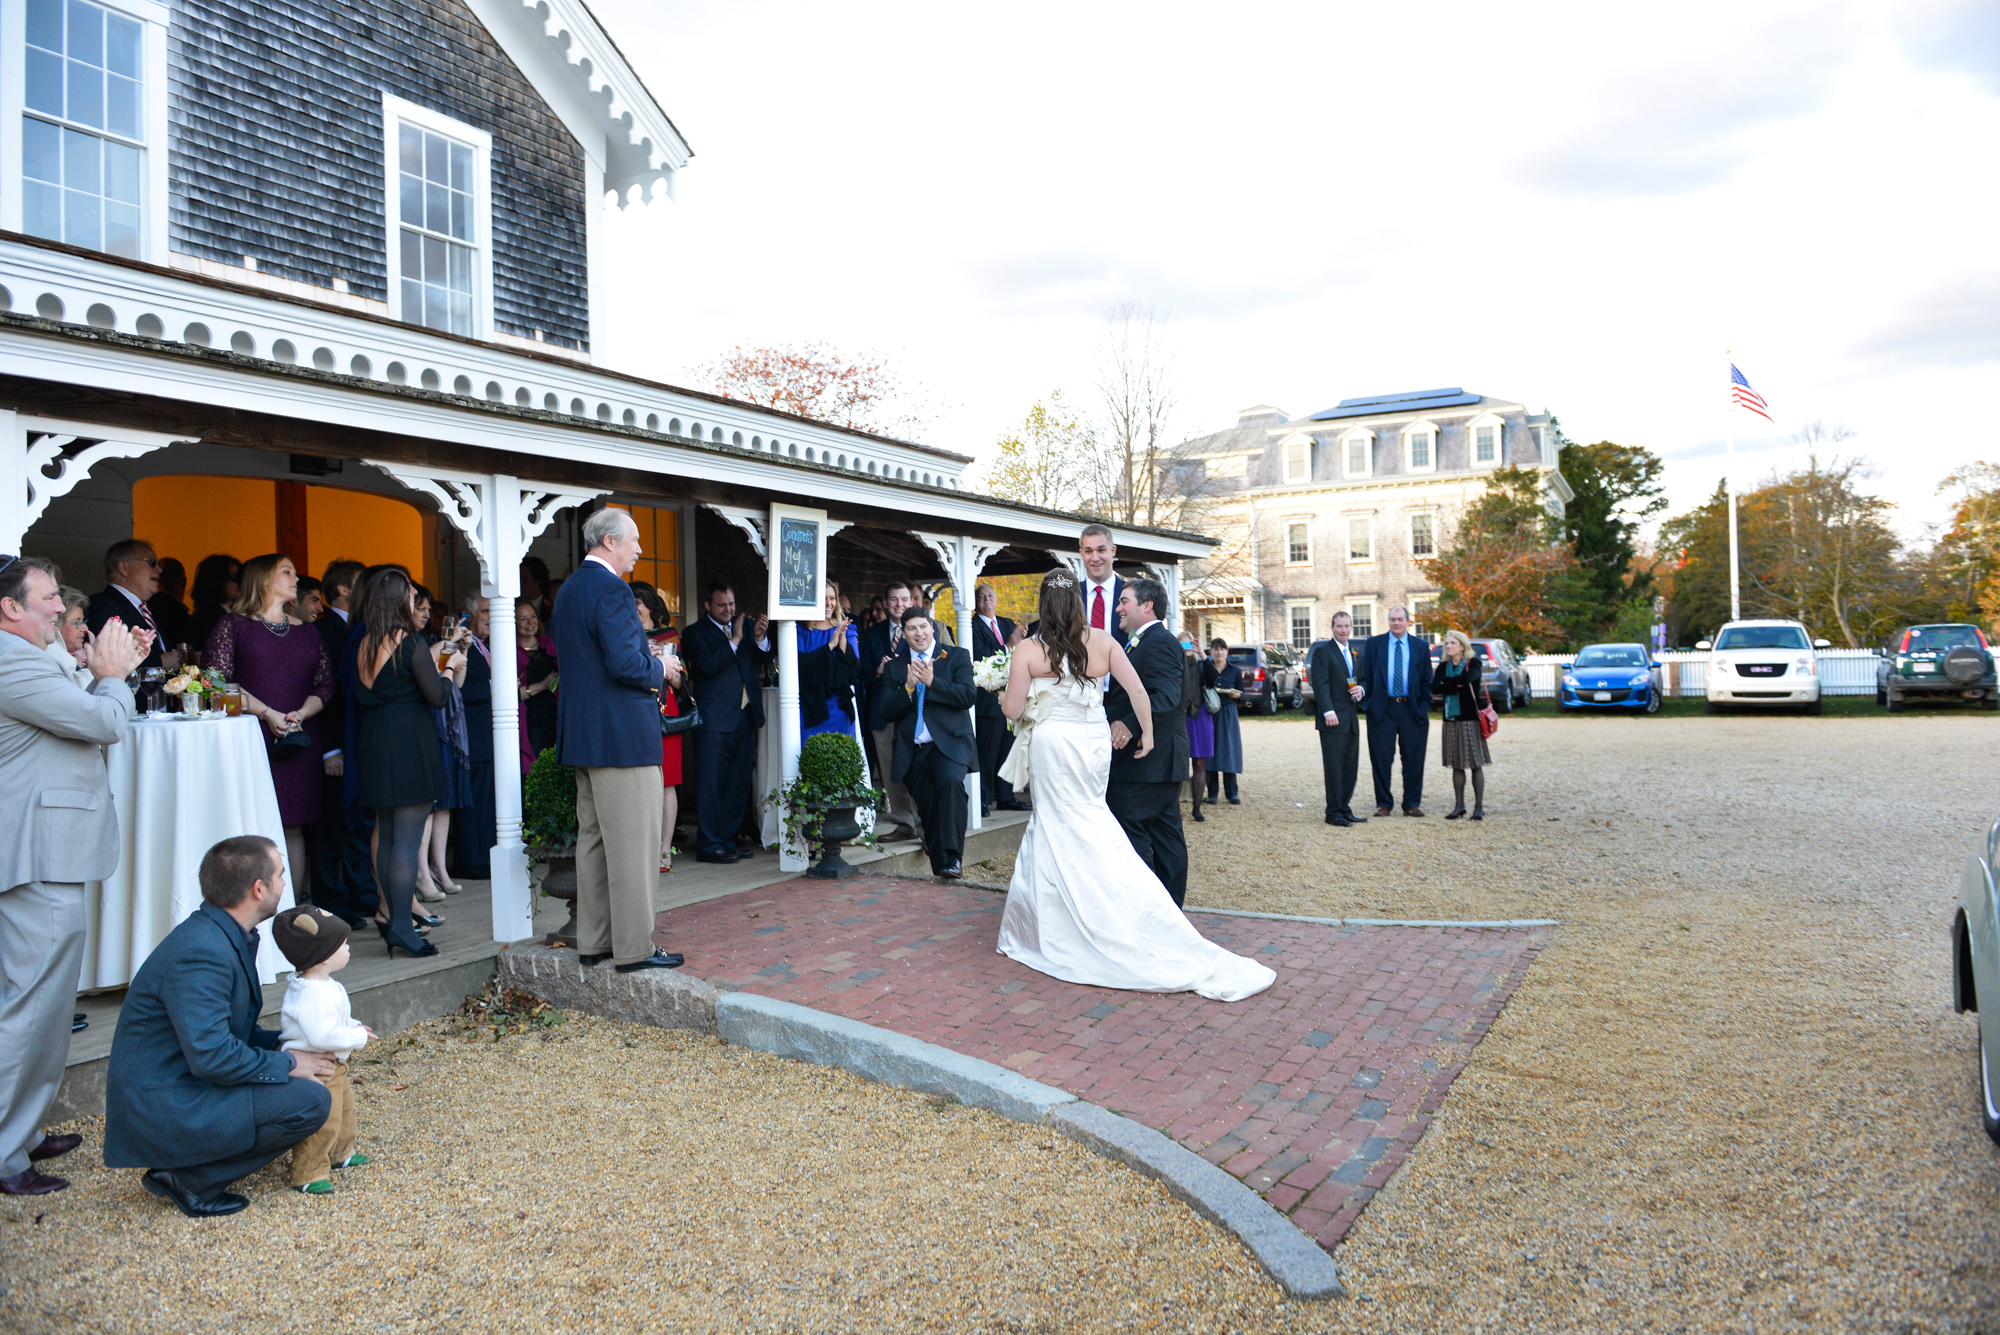 A bride and groom's grande entrance at the Grange Hall in West Tisbury photo by David Welch Photography